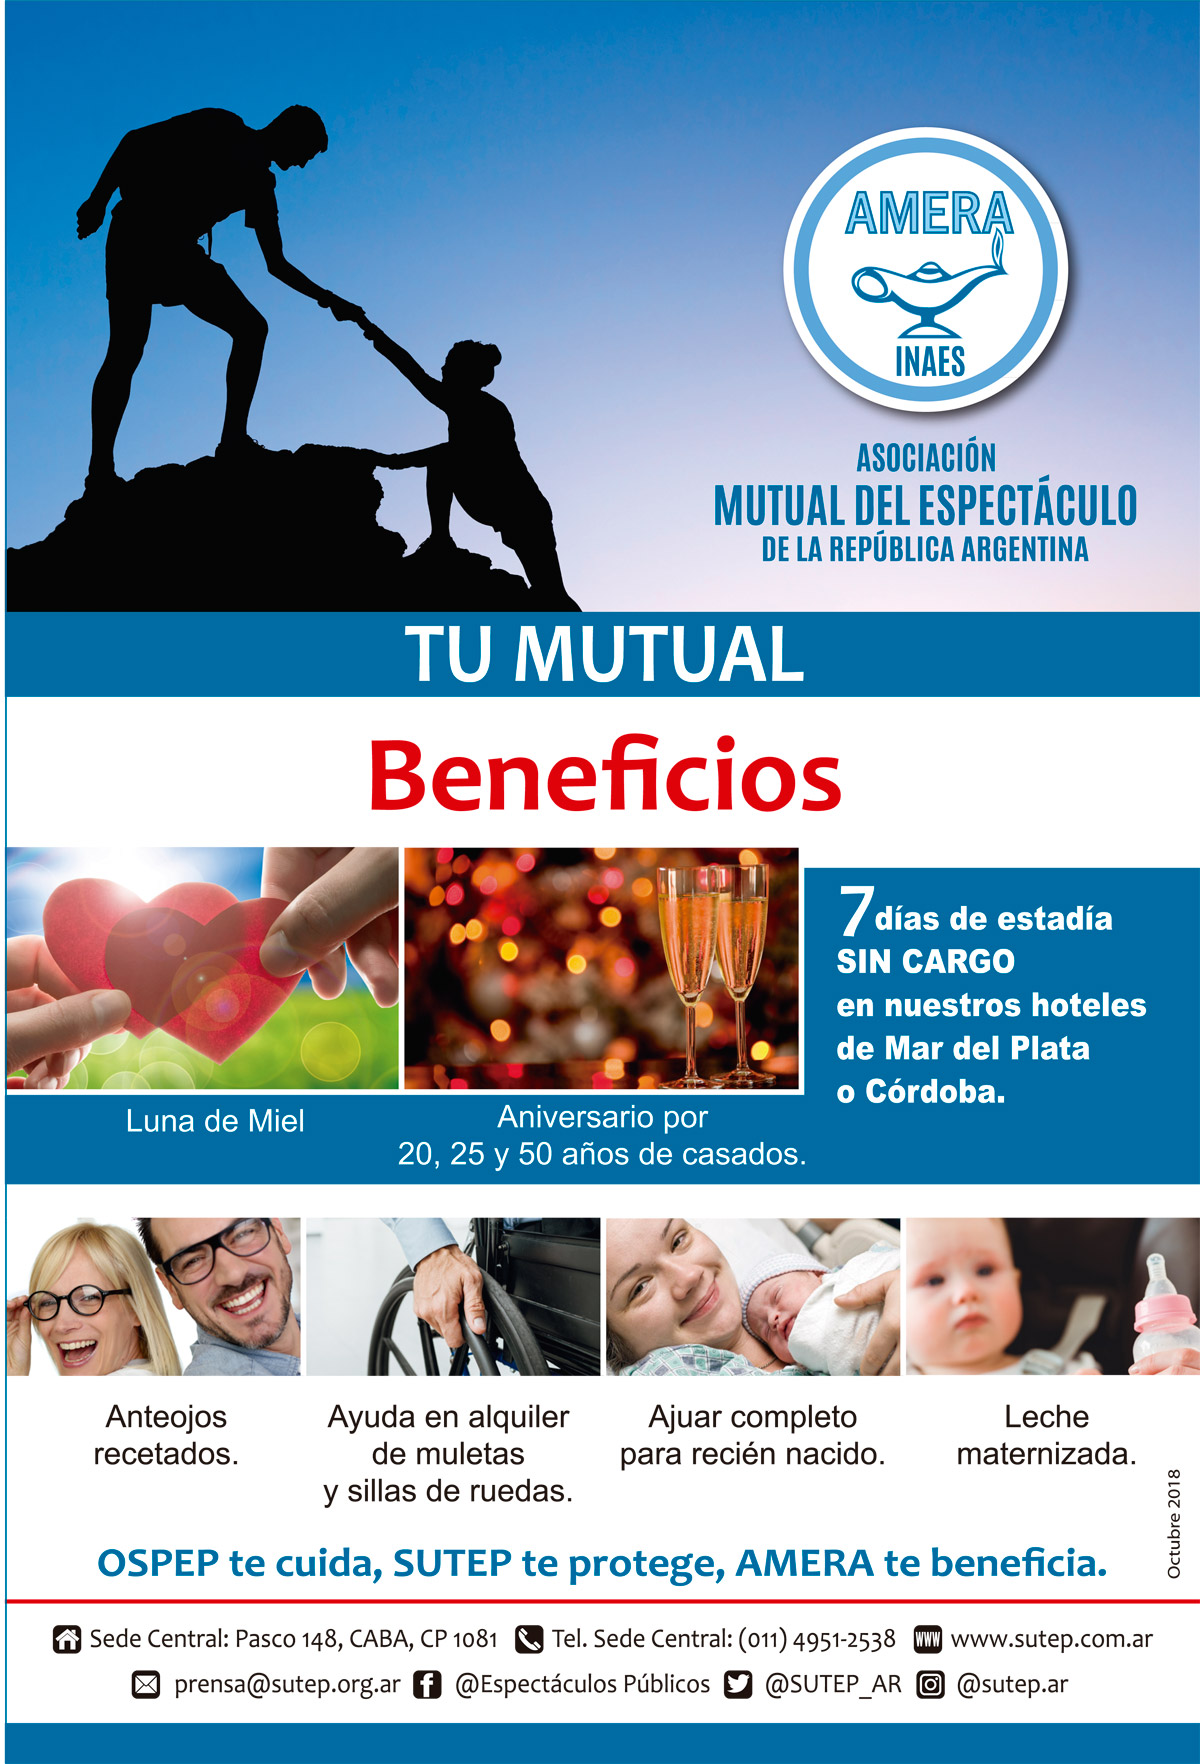 Mutual: Beneficios